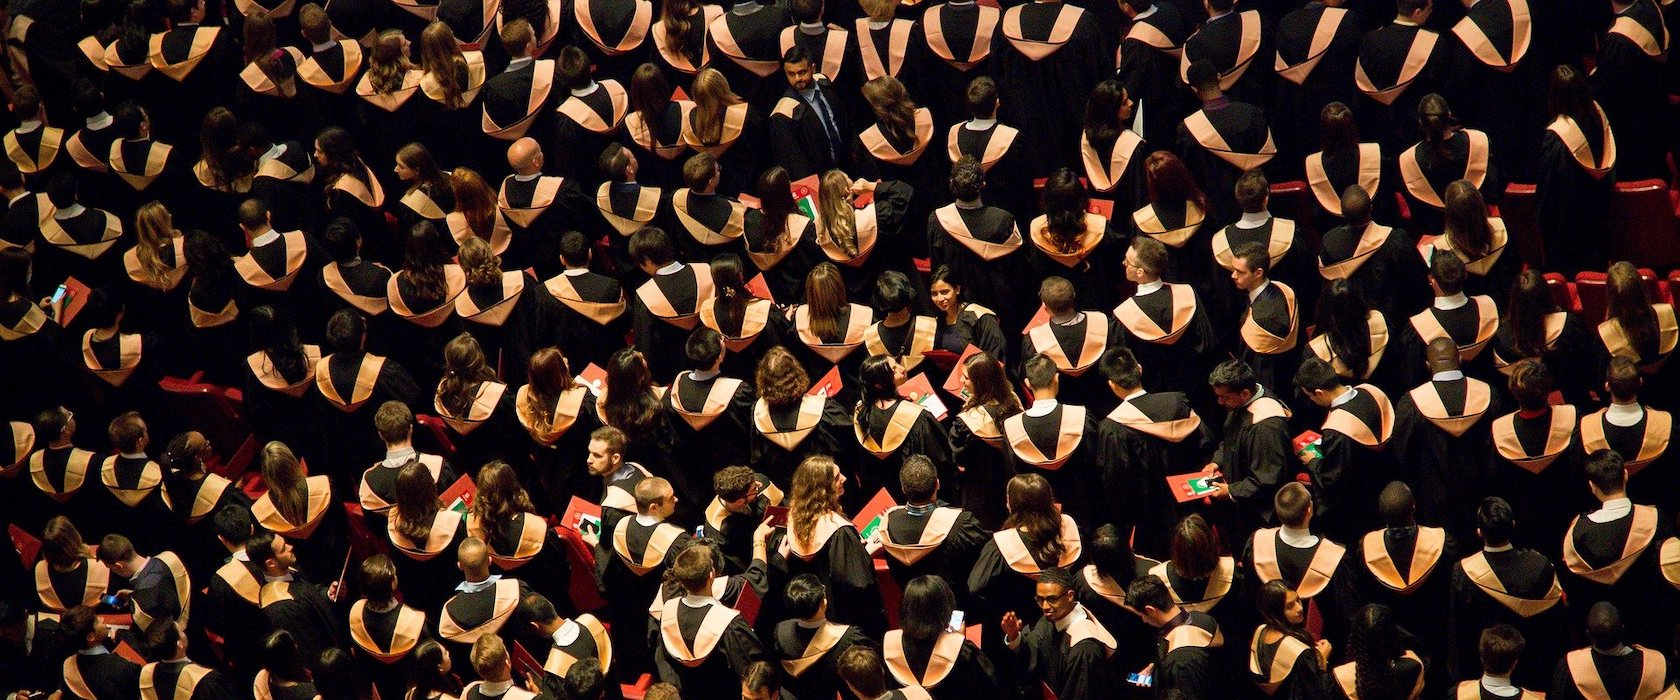 An overhead view of a large group of students in graduation gowns at a ceremony